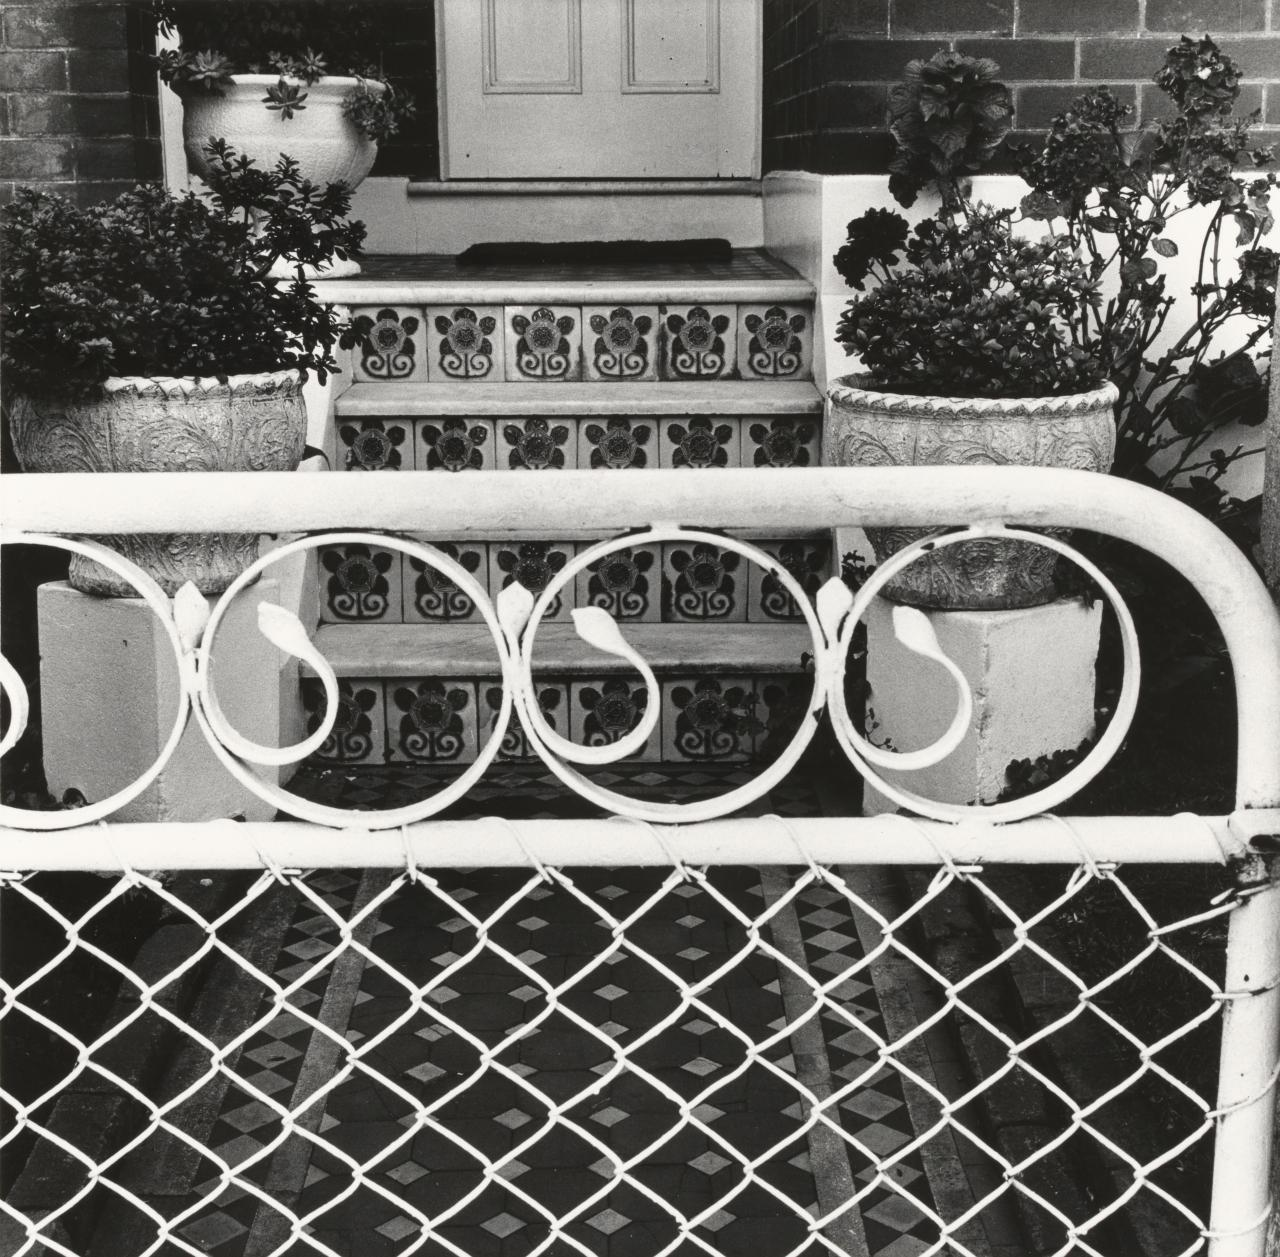 House front in Marrickville, Sydney, March 1975